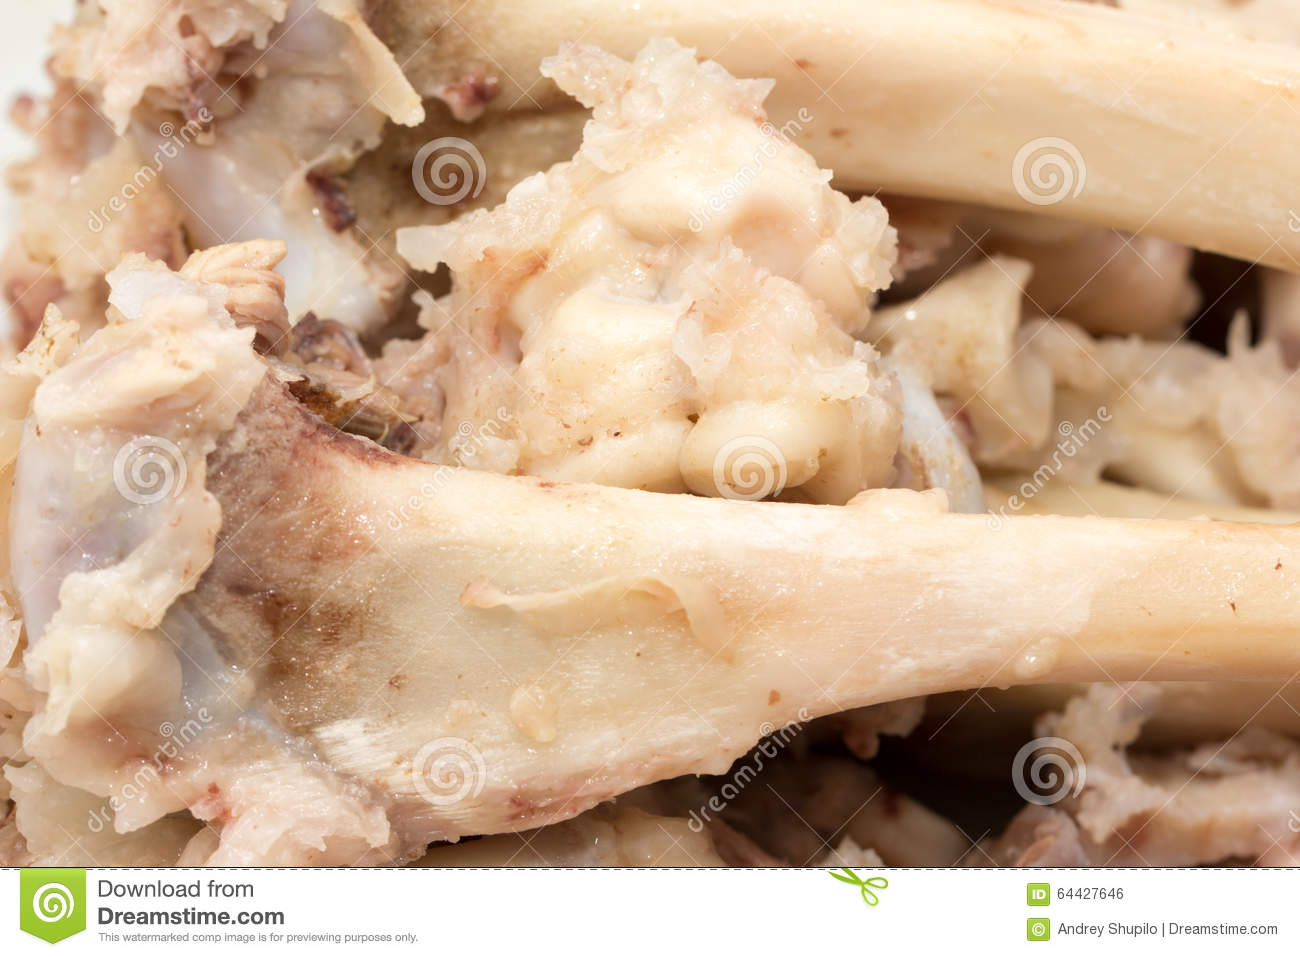 Image Result For Can My Dog Eat Boileden Bones